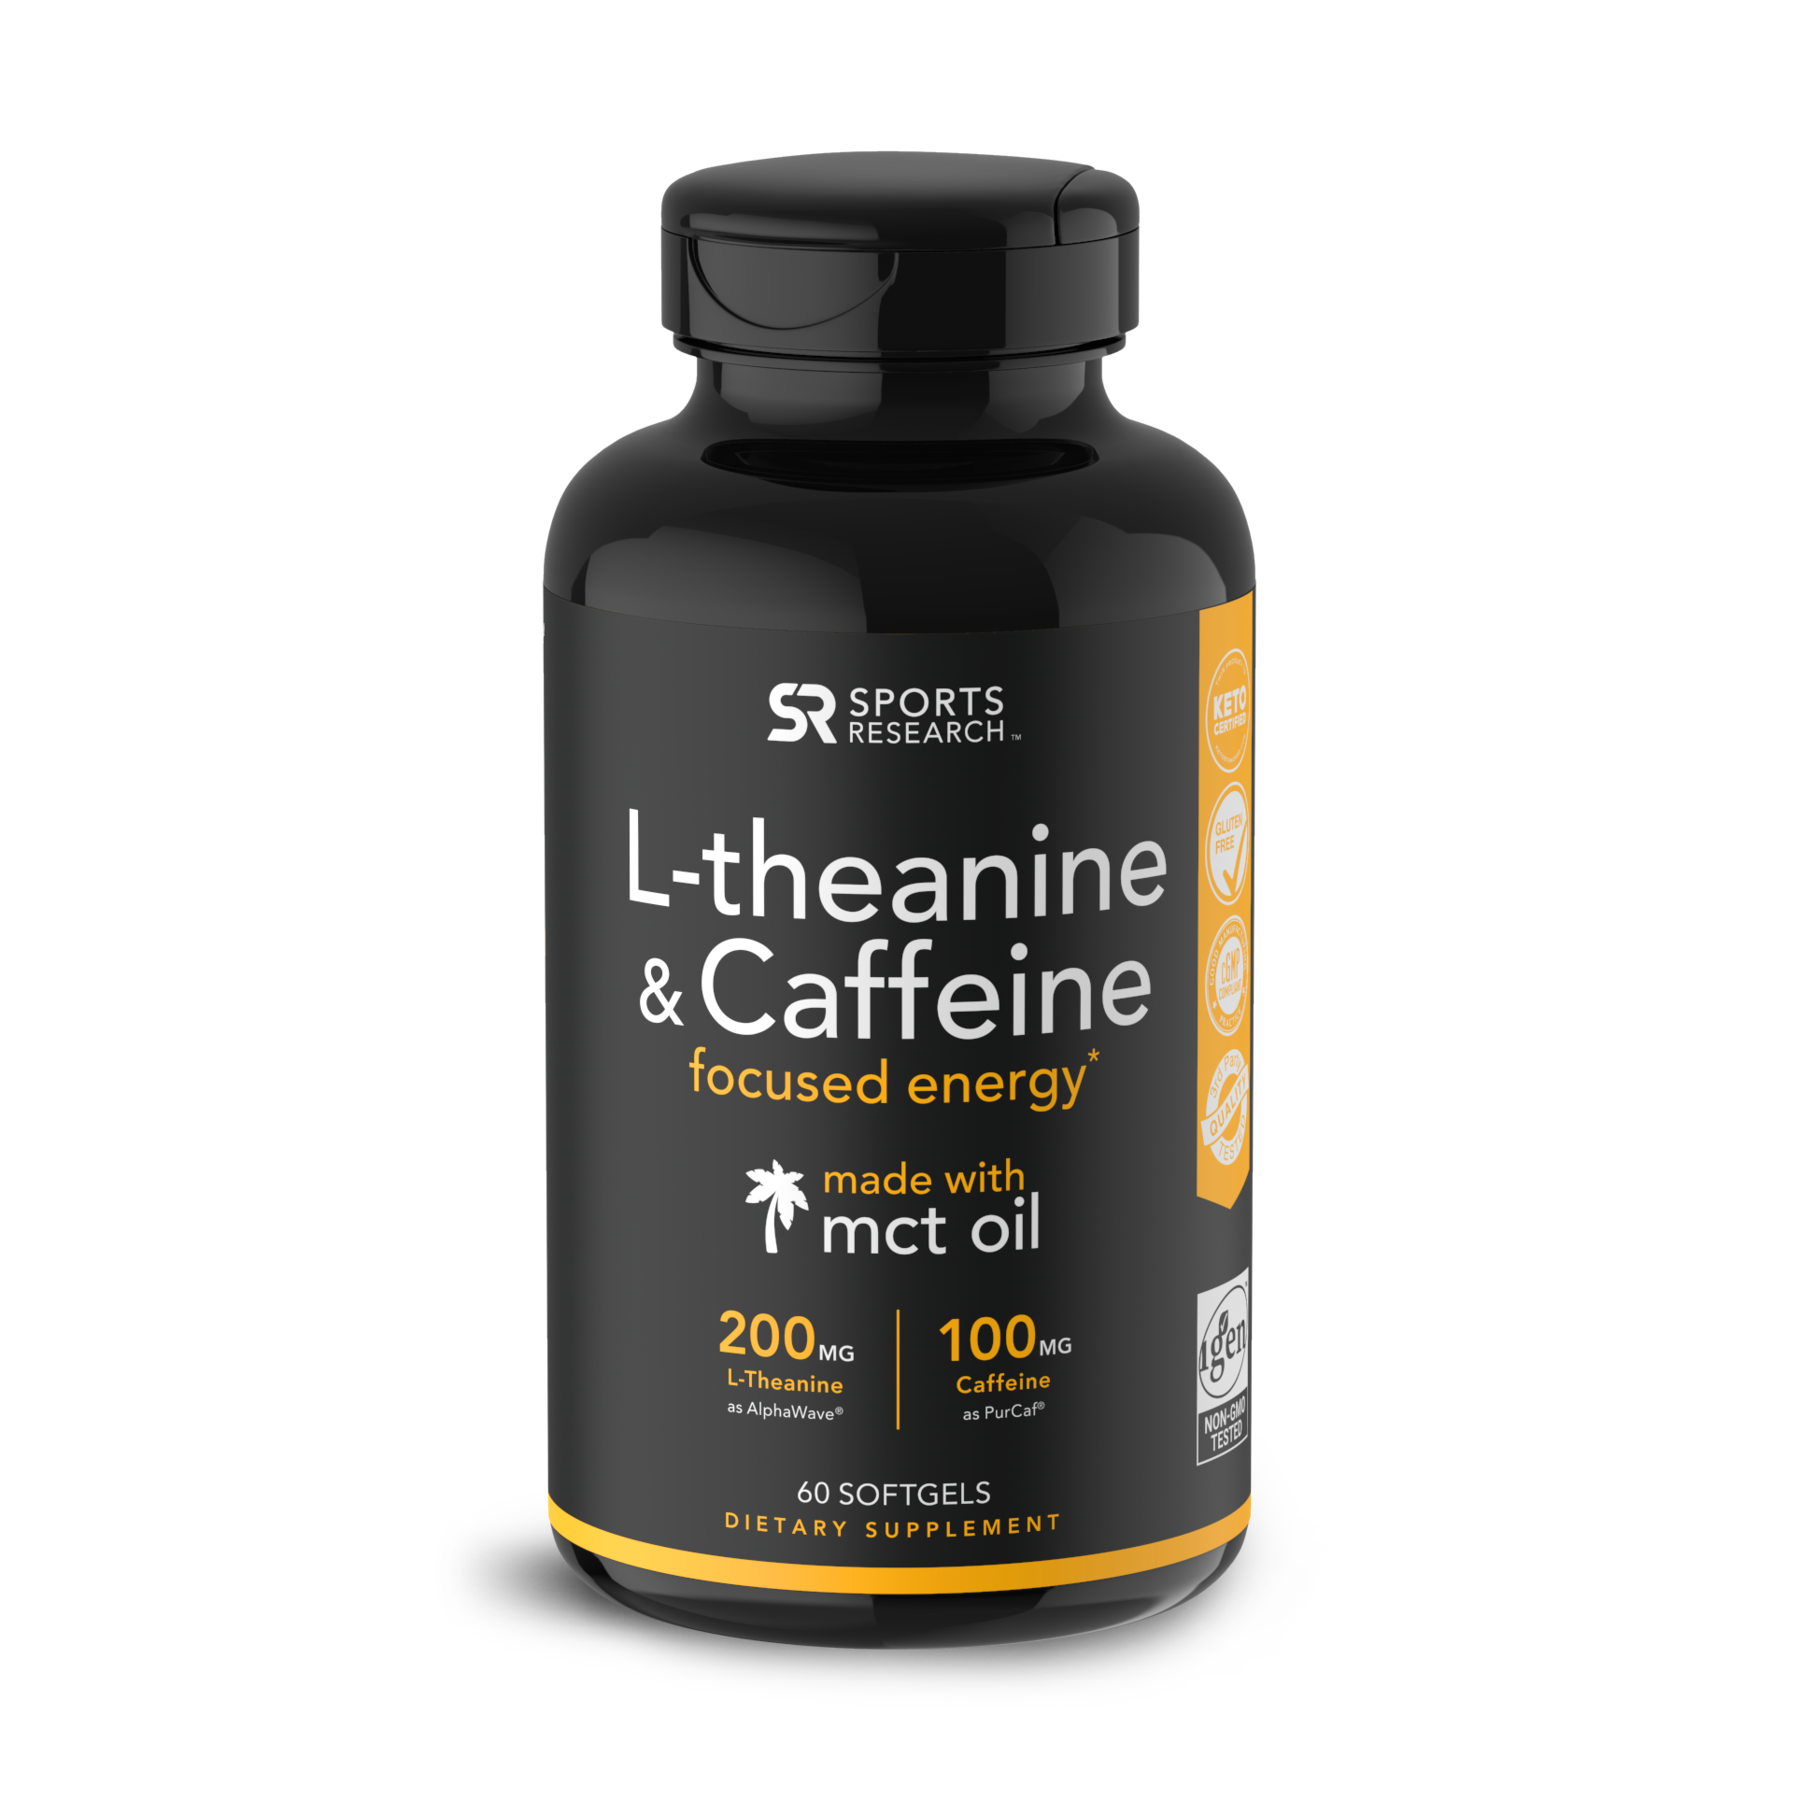 L-теанин и кофеин с маслом MCT, L-Theanine and Caffeine, Sports Research, 60 капсул